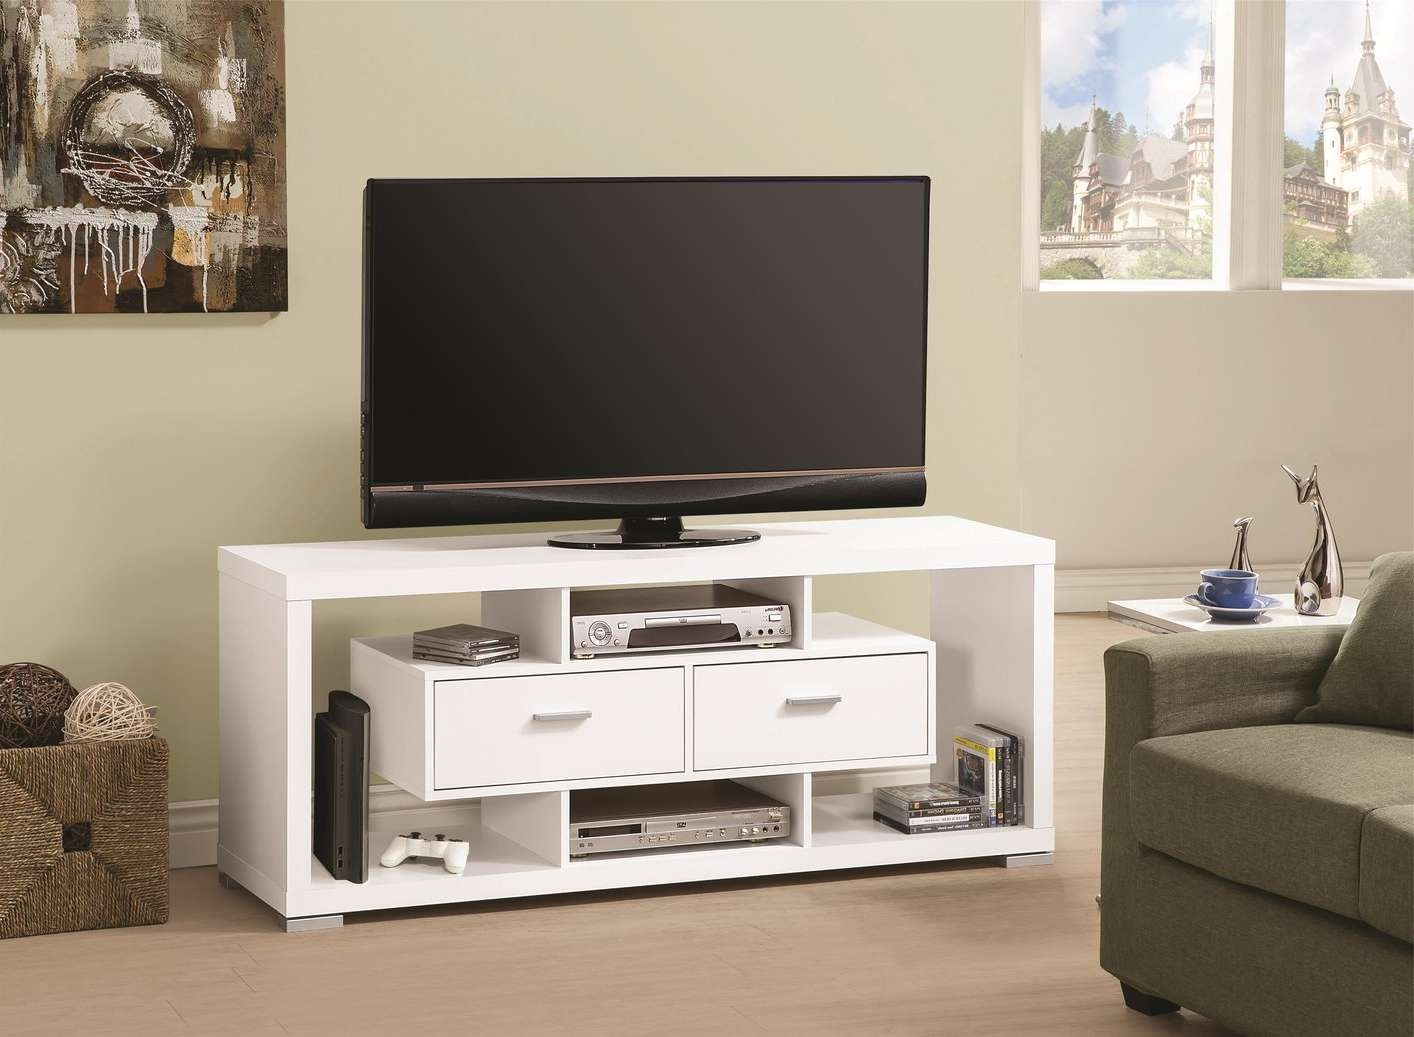 Long White Tv Cabinet | Izfurniture Inside White Wood Tv Cabinets (View 7 of 20)